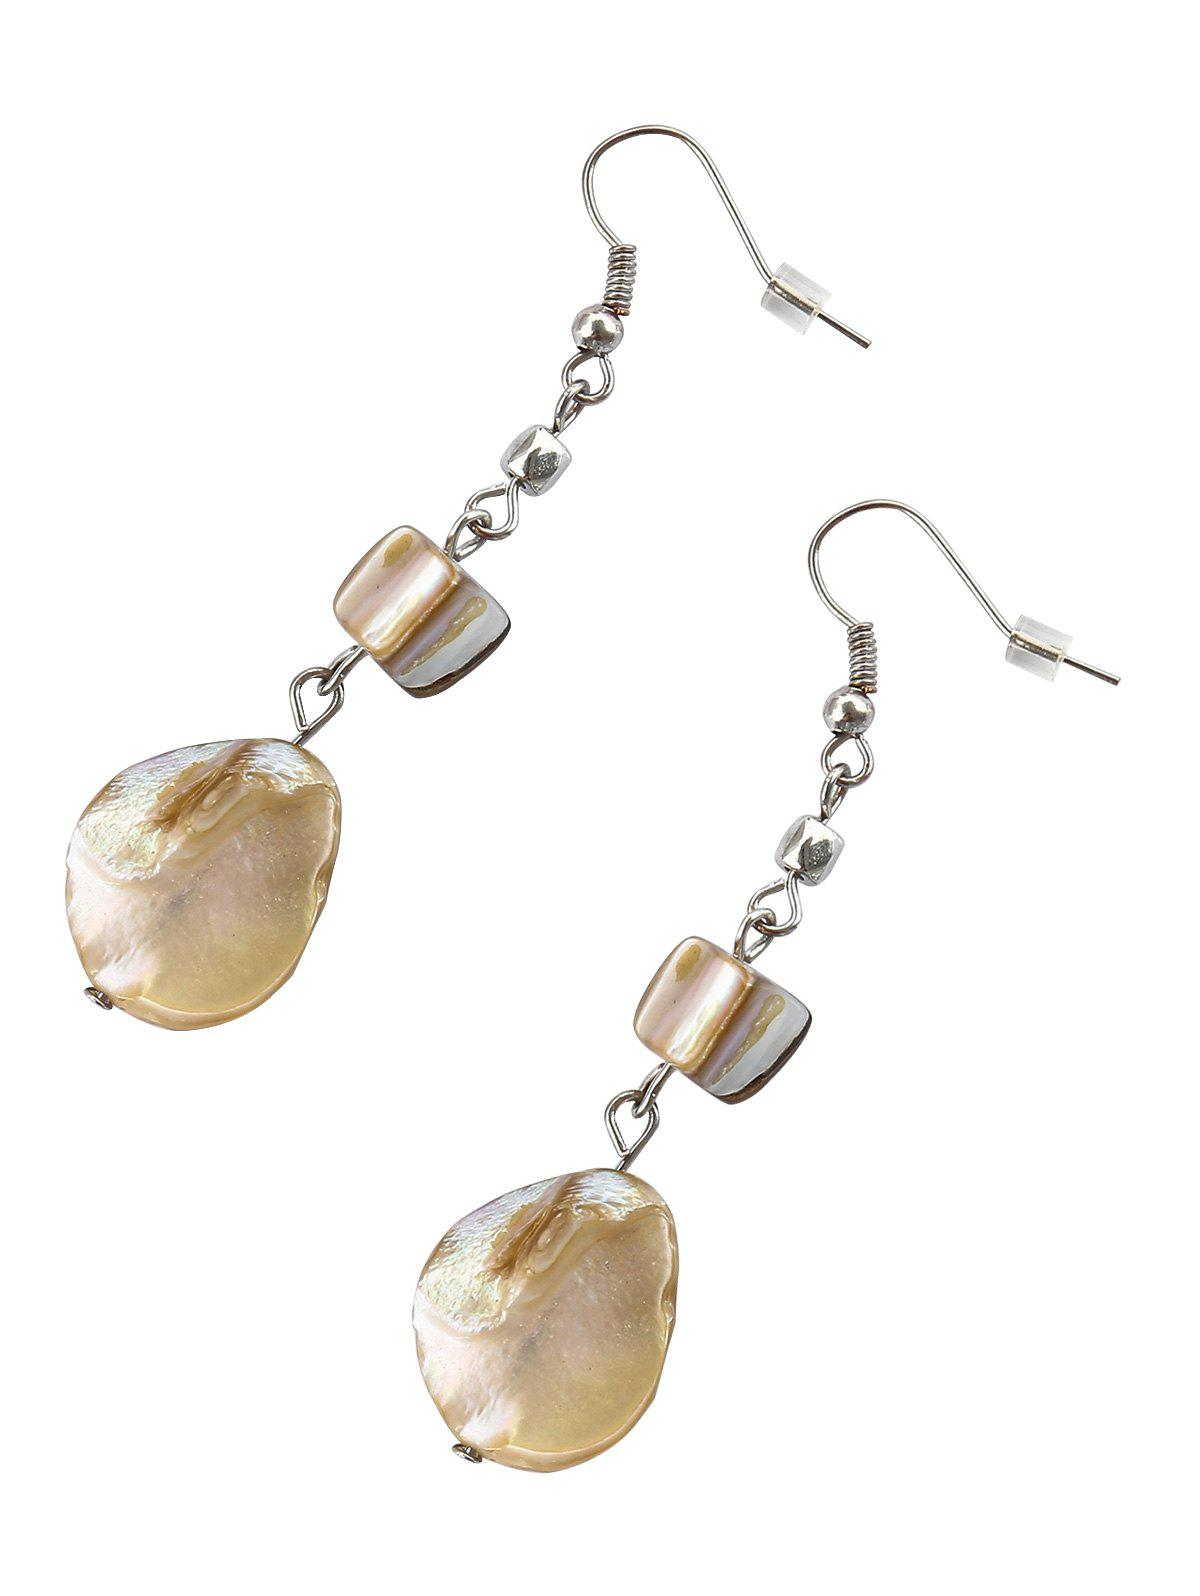 Buy Unique Natural Stone Drop Earrings